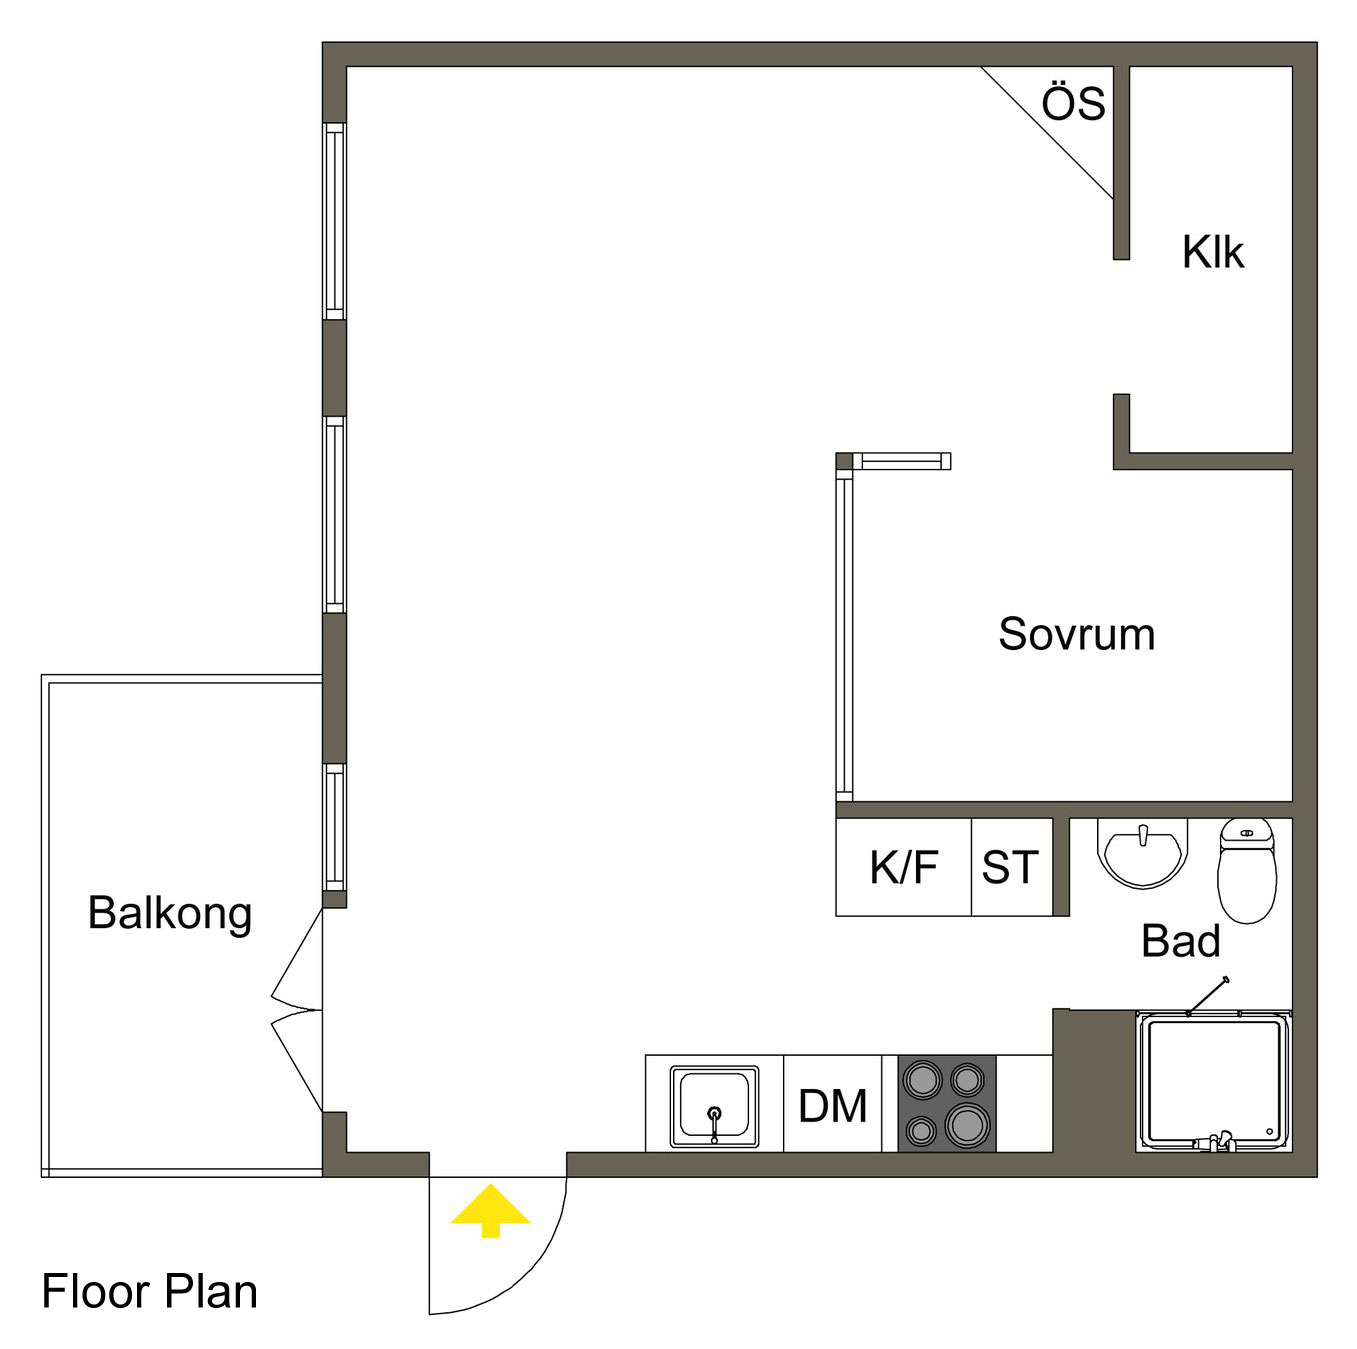 Floor Plan, Apartment in Östermalm, Stockholm